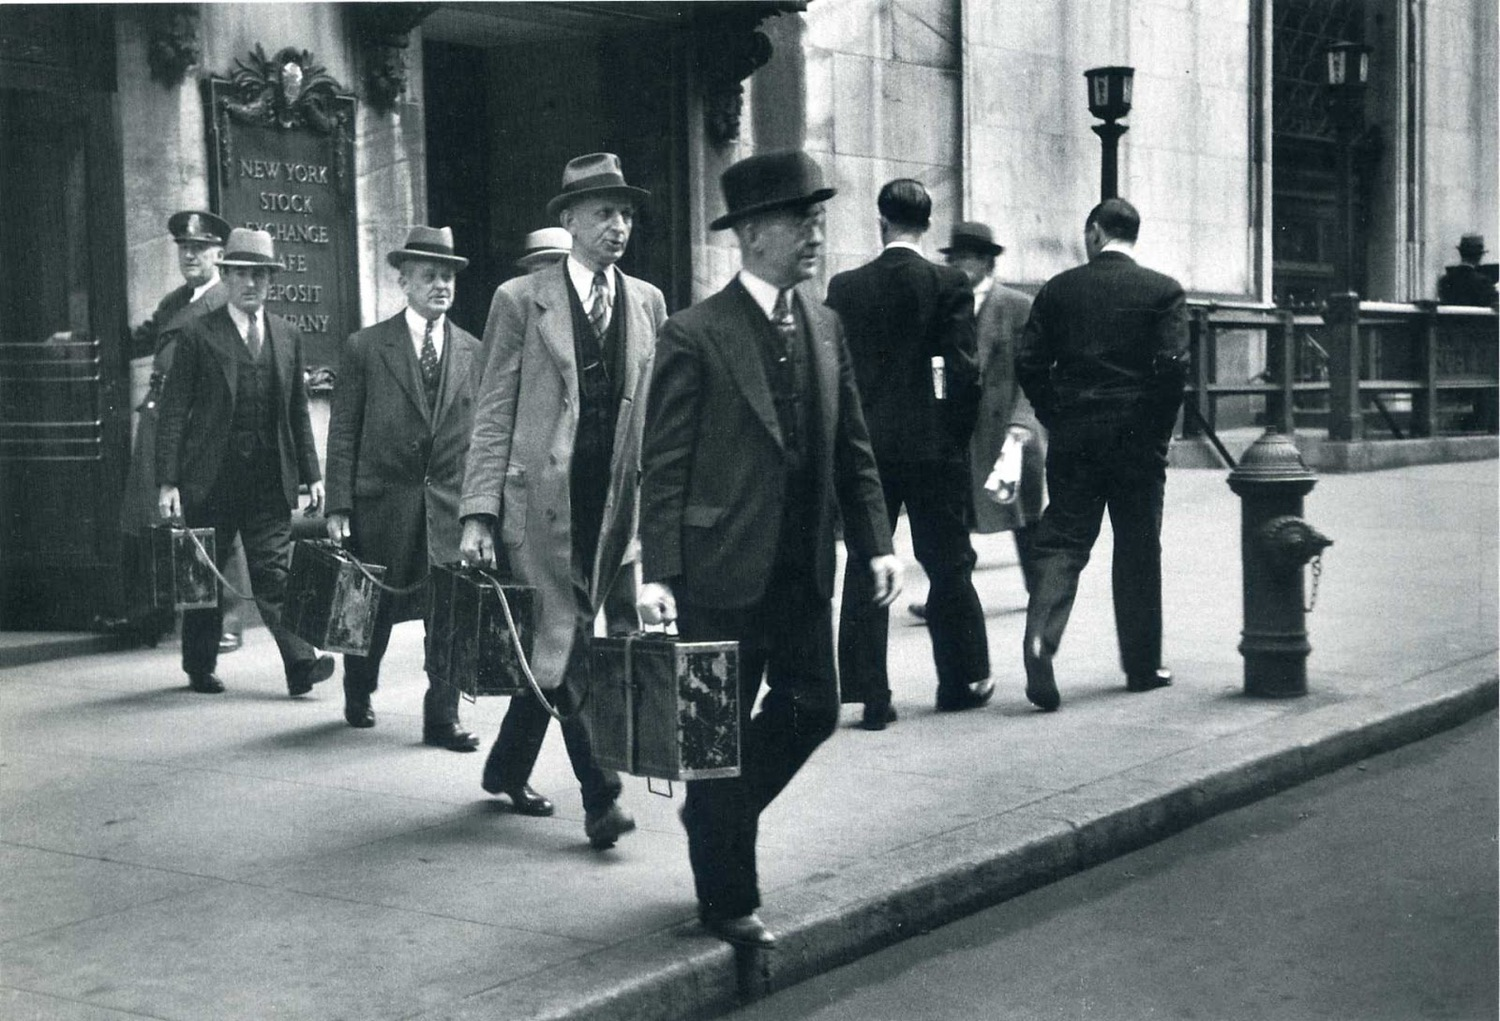 """Chain Gang"" of New York Stock Exchange Officers Carries Traded Securities Each Day to Banks and Brokerage Houses, New York, 1937 by Carl Mydans."